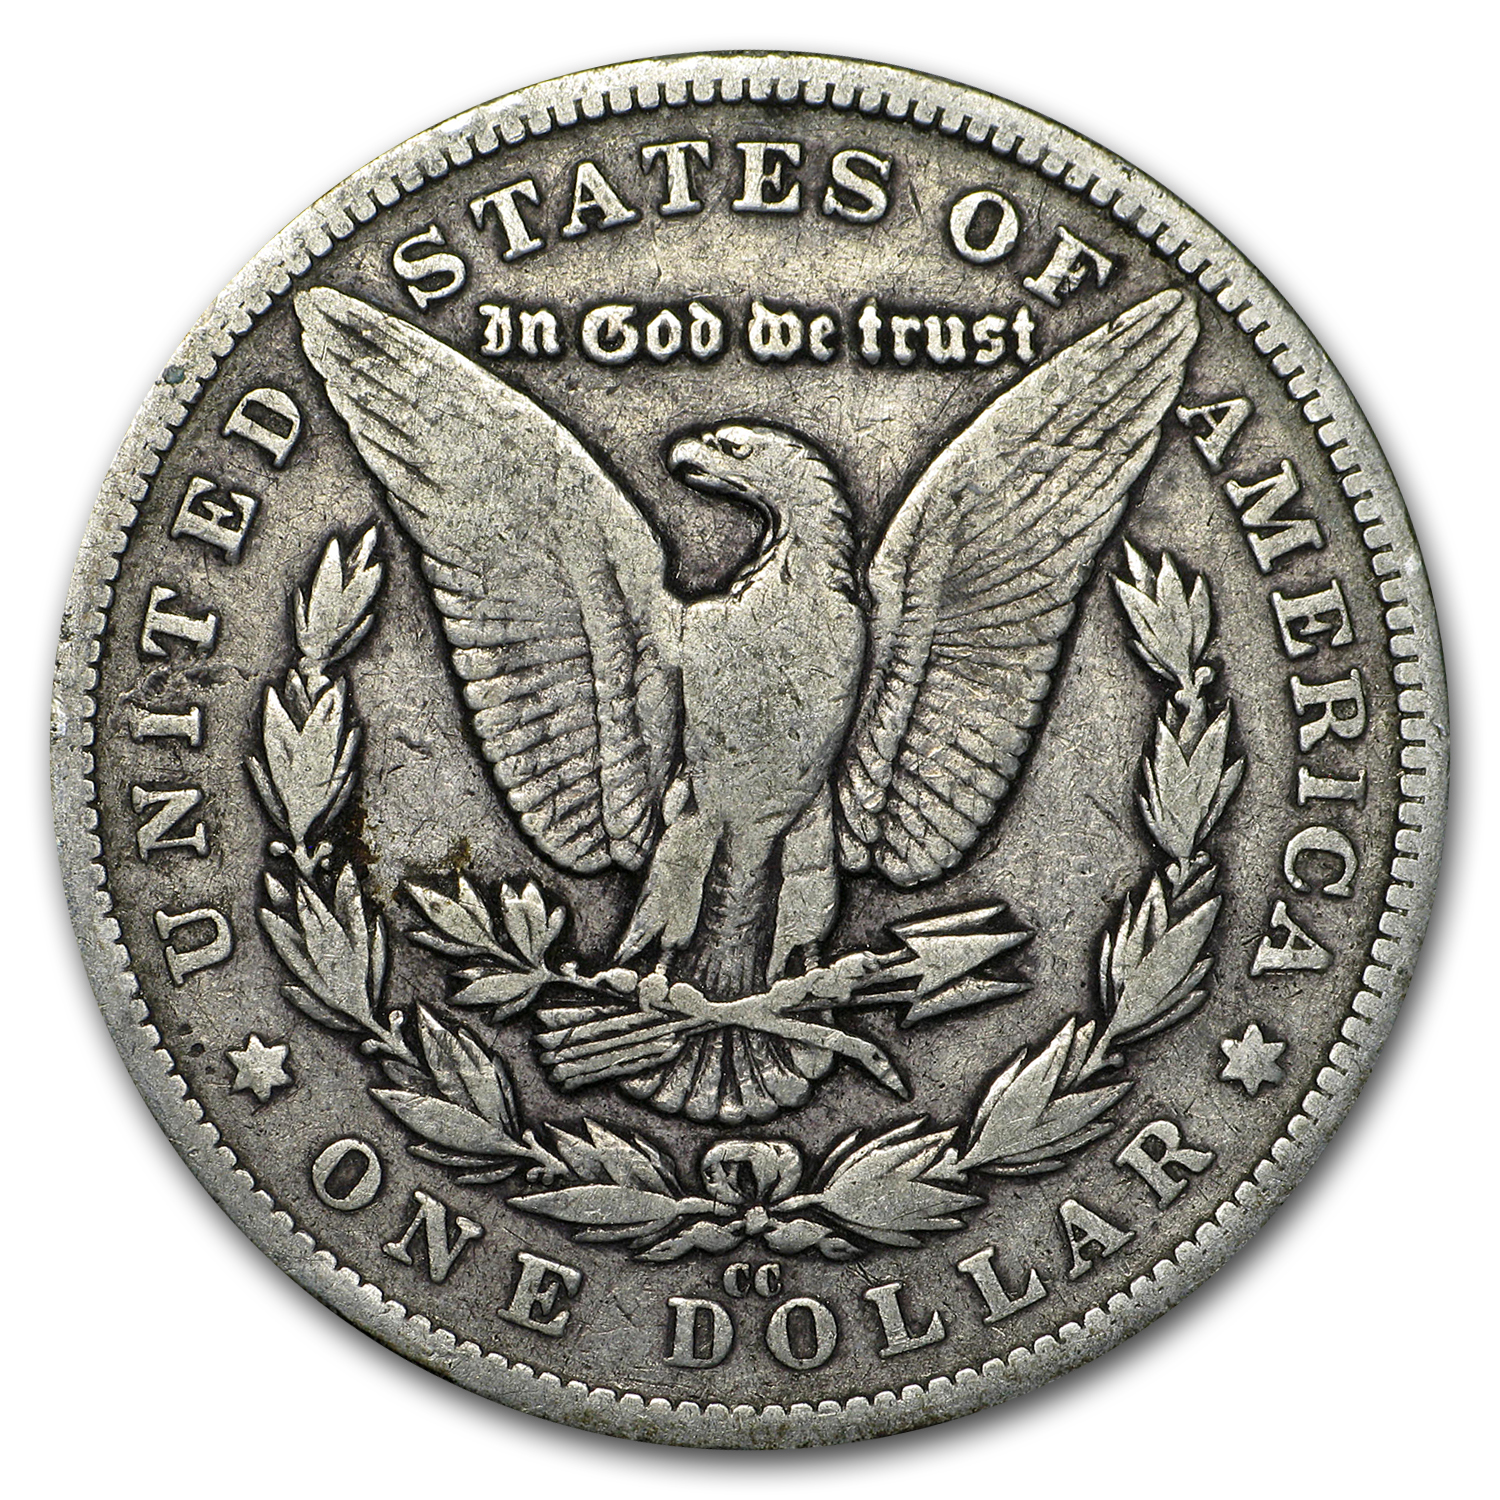 1880-CC Morgan Dollar - Very Fine